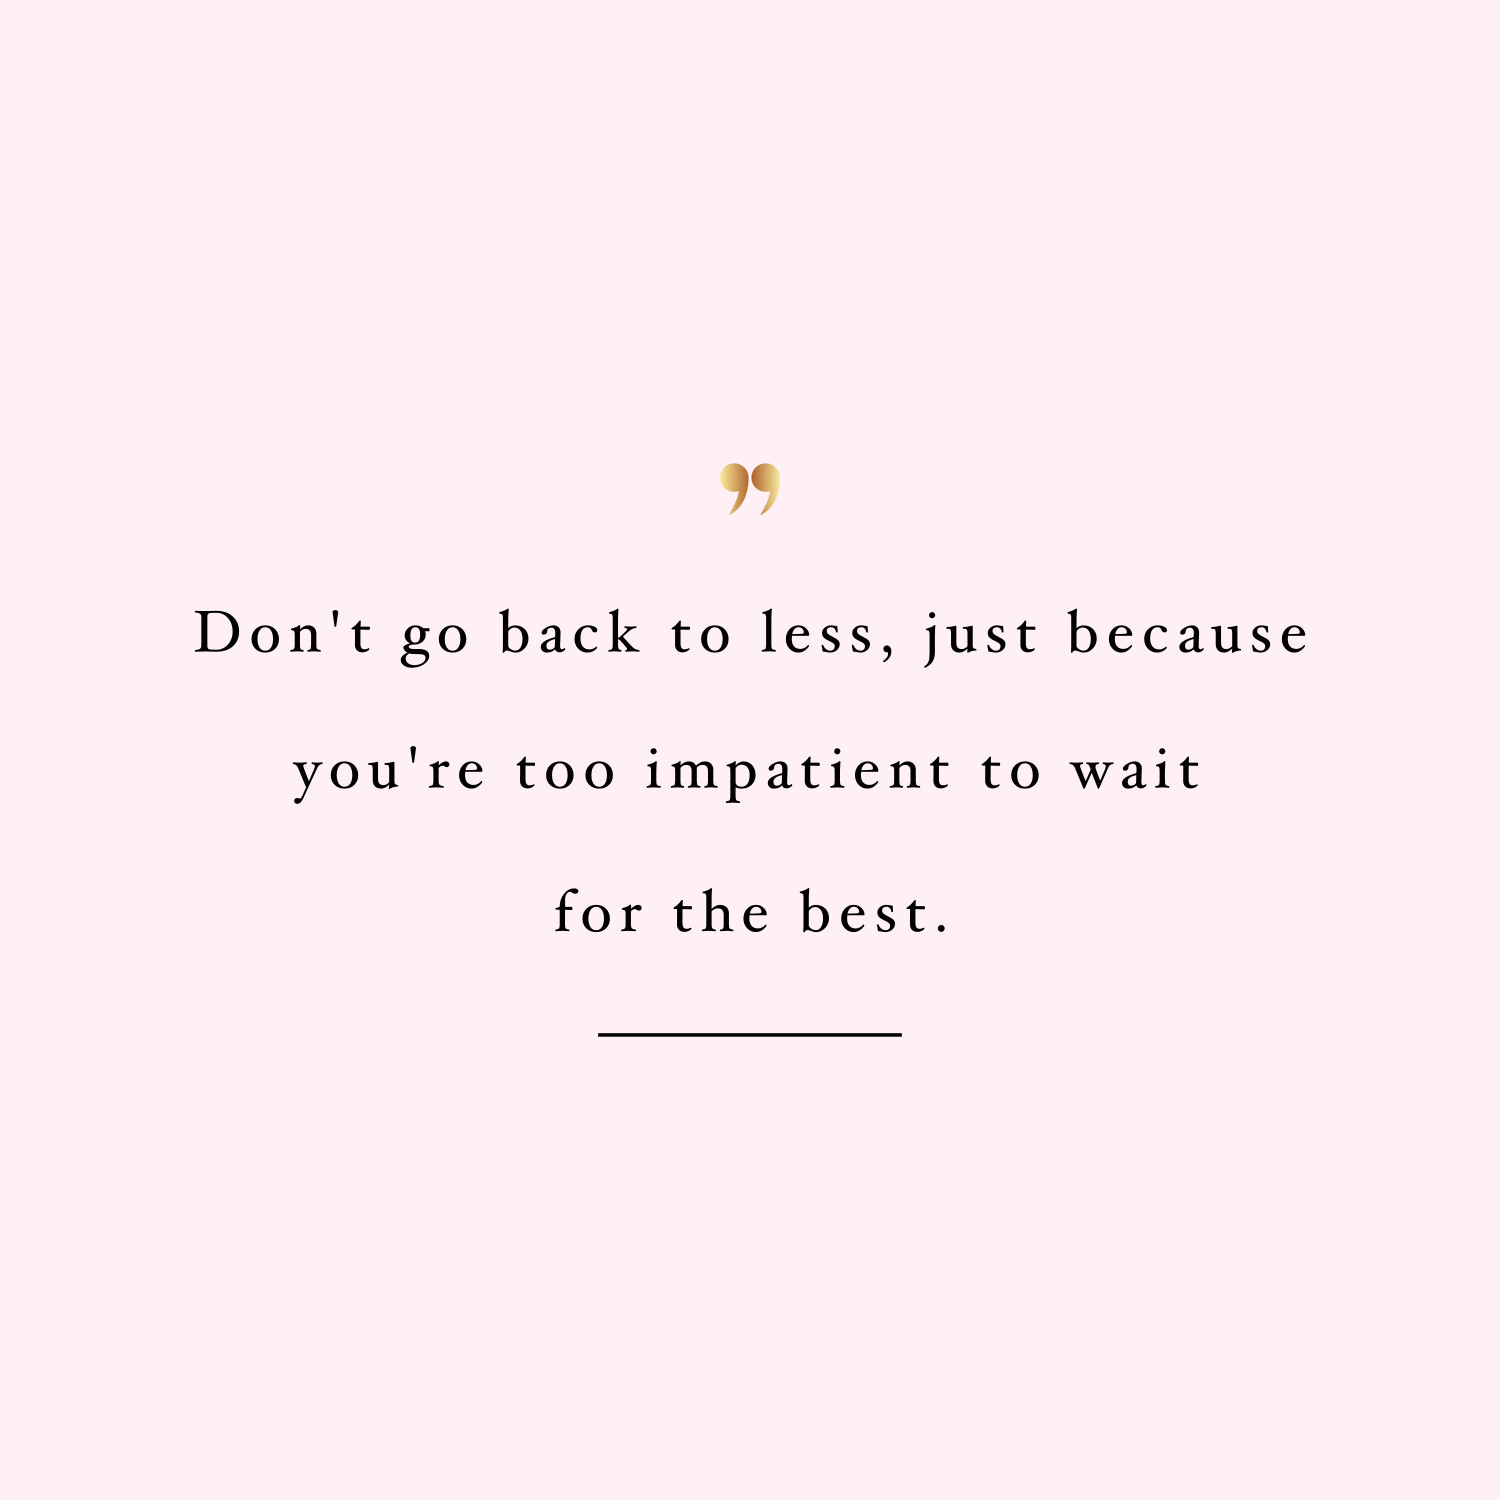 Be patient! Browse our collection of inspirational health and fitness quotes and get instant training and weight loss motivation. Transform positive thoughts into positive actions and get fit, healthy and happy! https://www.spotebi.com/workout-motivation/be-patient/